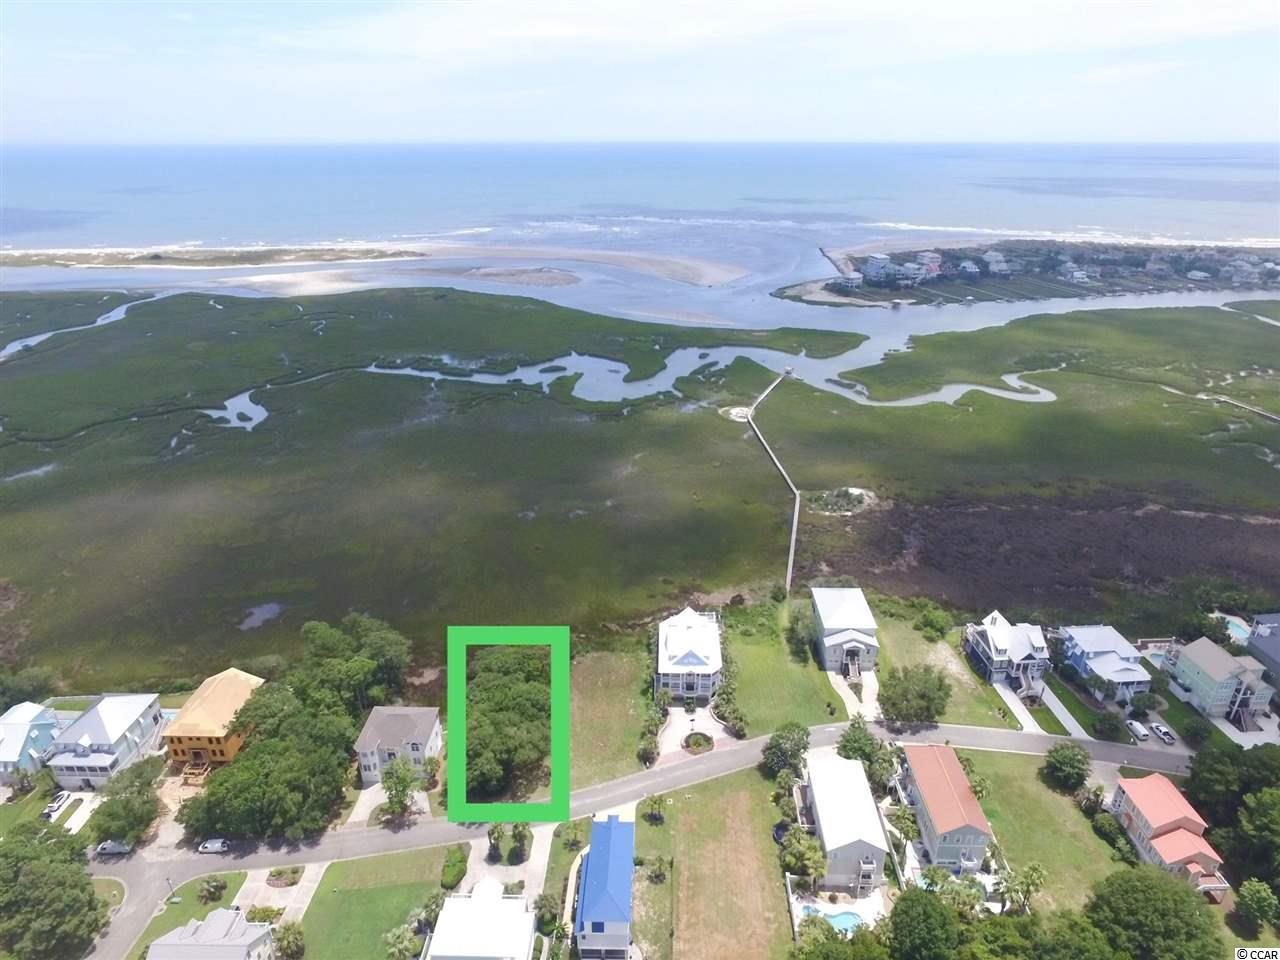 """""""Quite possibly the most beautiful vacant lot left in Pawleys Island! Unobstructed, breath-taking view of the Atlantic Ocean over the inlet separating Litchfield and Pawleys Island. Located in the sought-after, gated Sweetgrass Marsh community. Shared dock with private water access for kayaking, fishing & crabbing. Walk or bike to fabulous shopping, including The Hammock Shops and Fresh Market. Close proximity to banks, medical facilities, restaurants and world-famous golf courses. 20 minutes to historic Georgetown, 30 minutes to Myrtle Beach International Airport."""""""